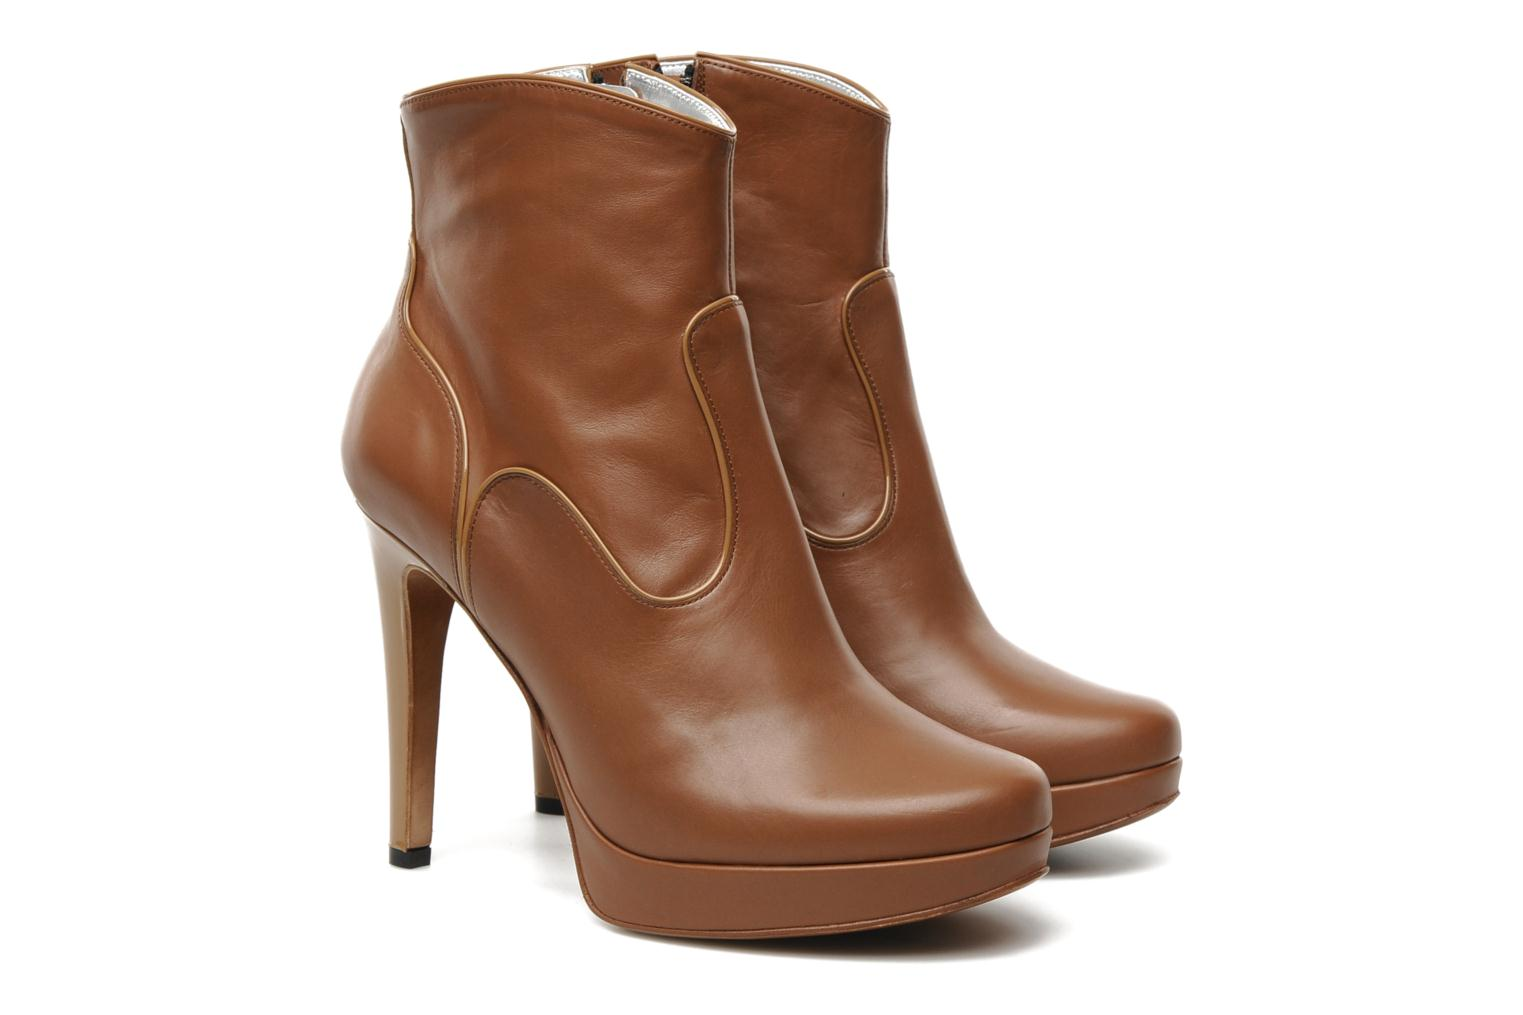 Keissy 7 zip boot piping vernis/veau marron